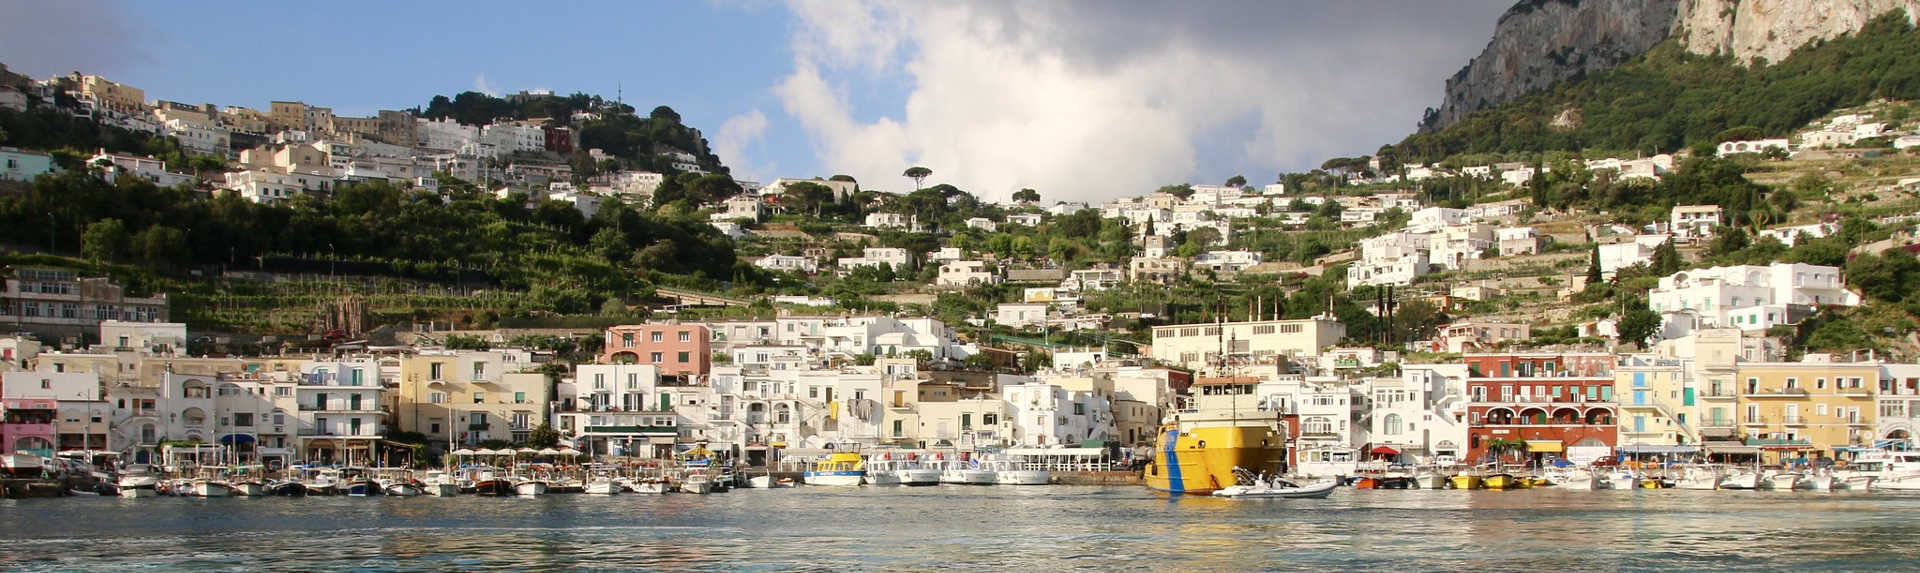 How much does a trip to Amalfi Coast cost?